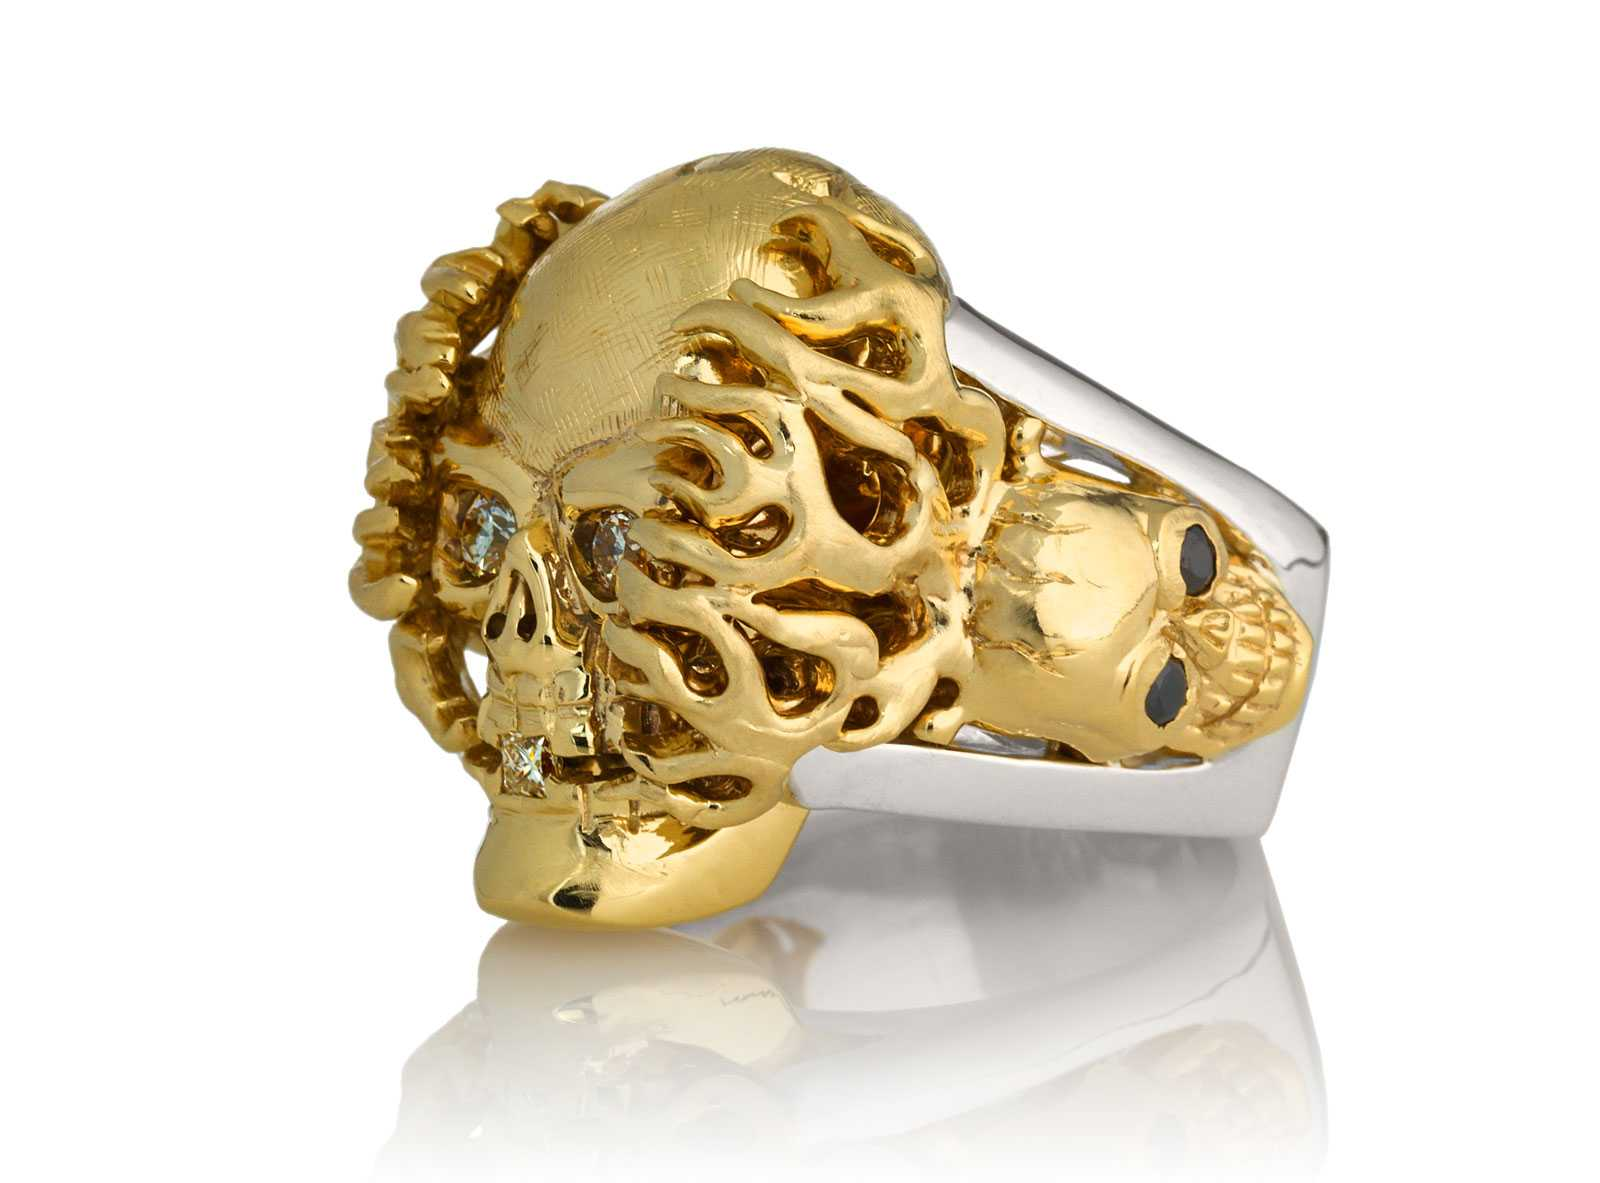 RG1020YGSIL Hot Head Harry Skull Ring (Left Side View) in Yellow Gold and Silver with White and Black Diamonds, designed by Steve Soffa